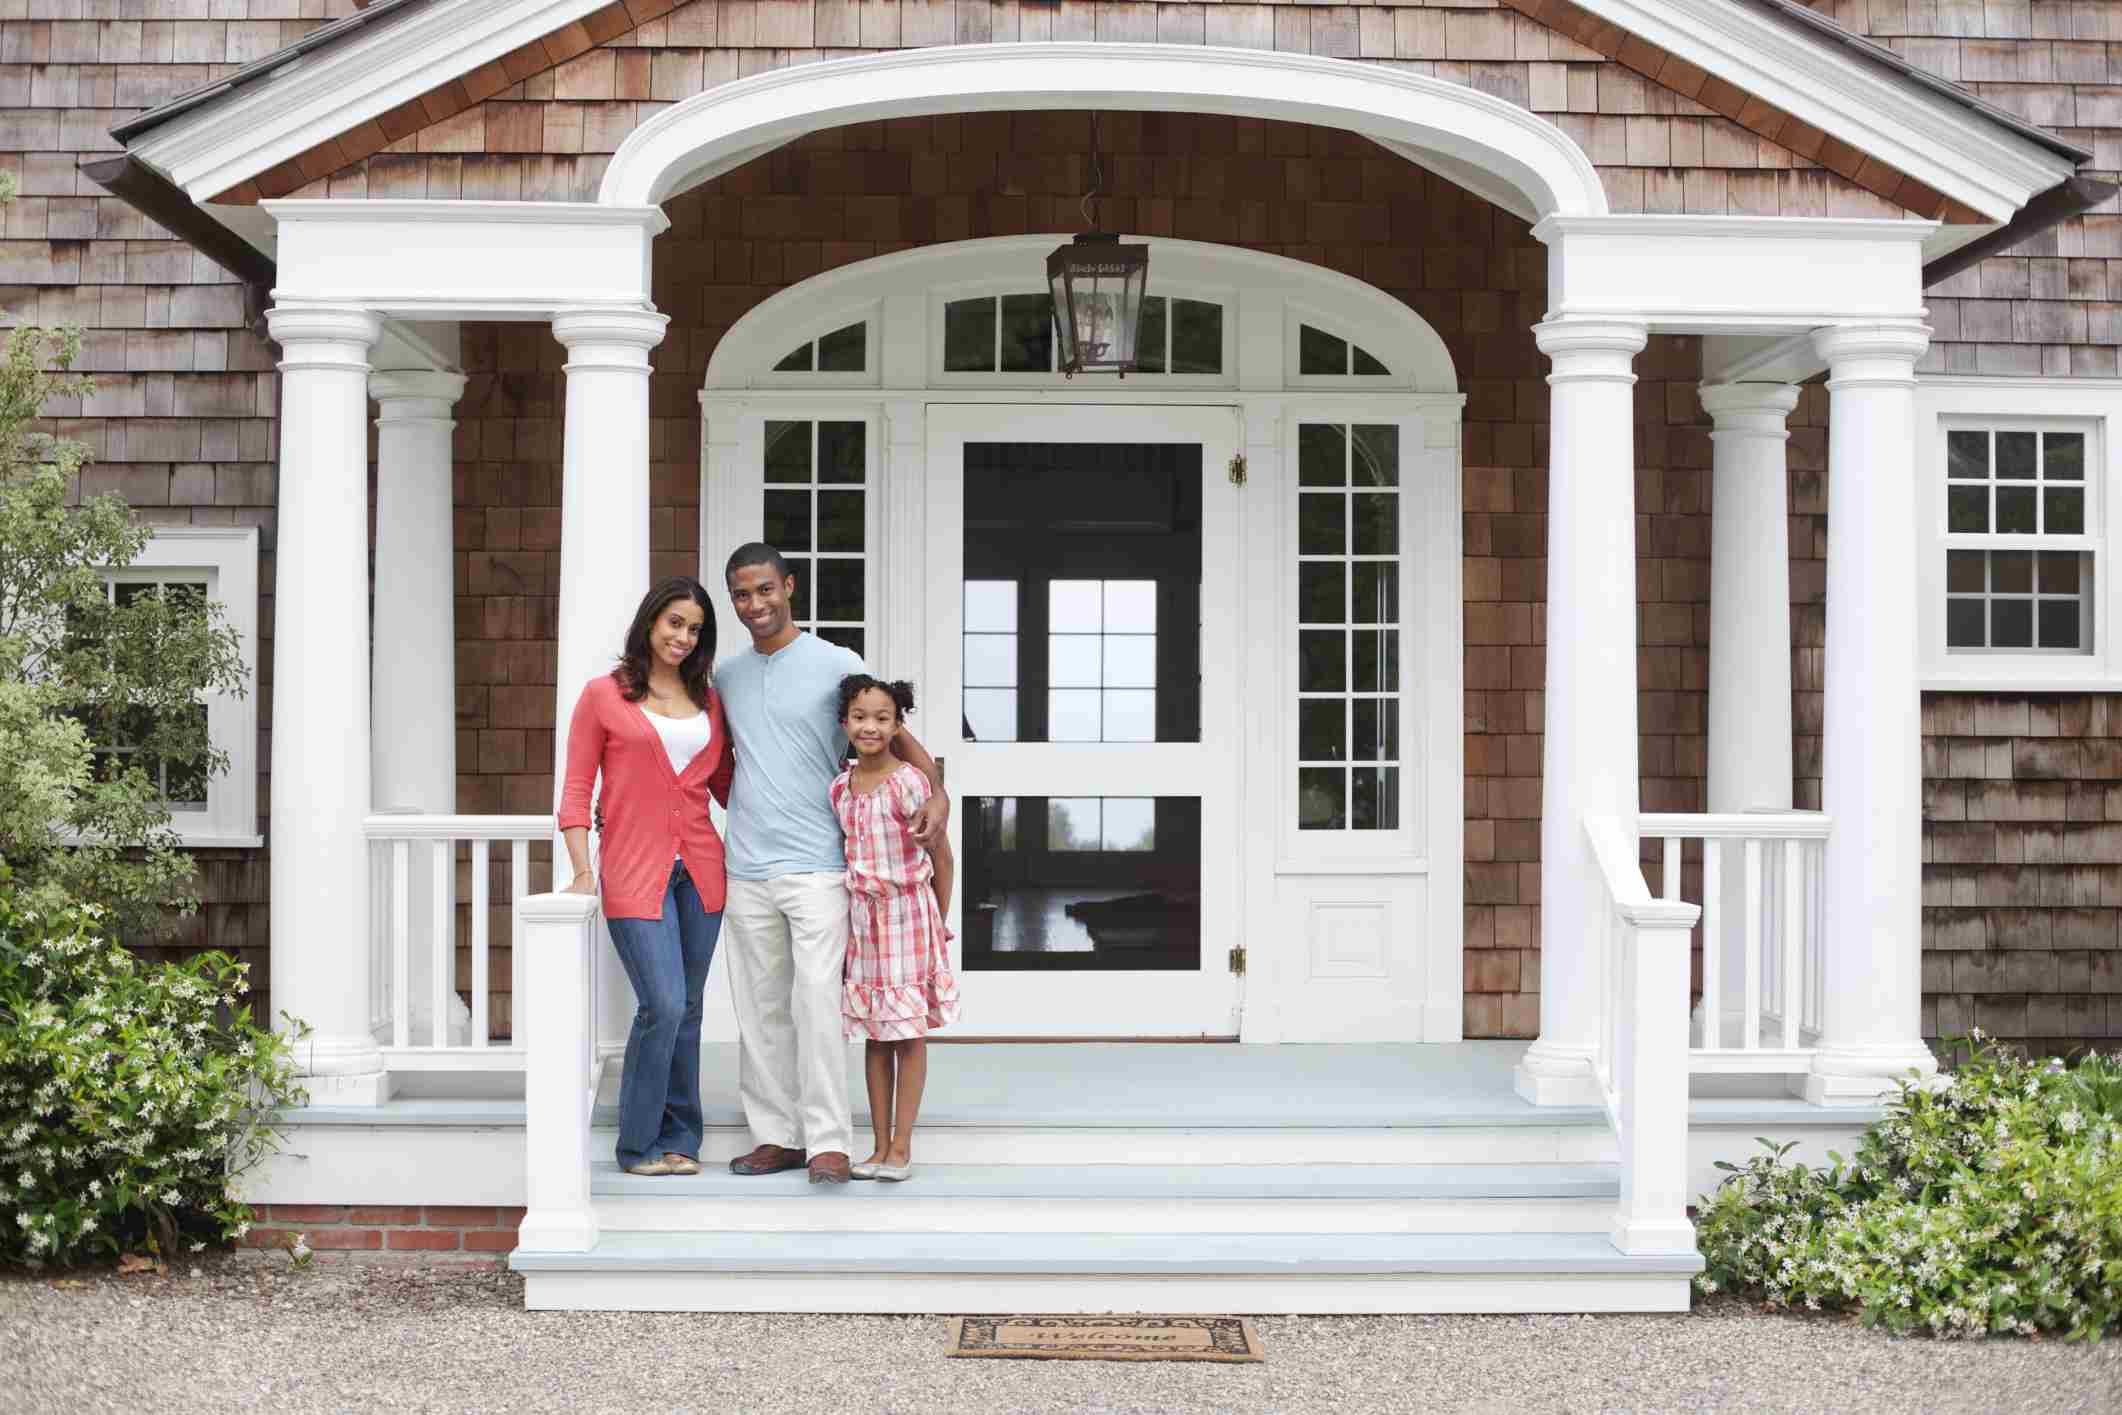 black family standing on the columned porch of their shingled house